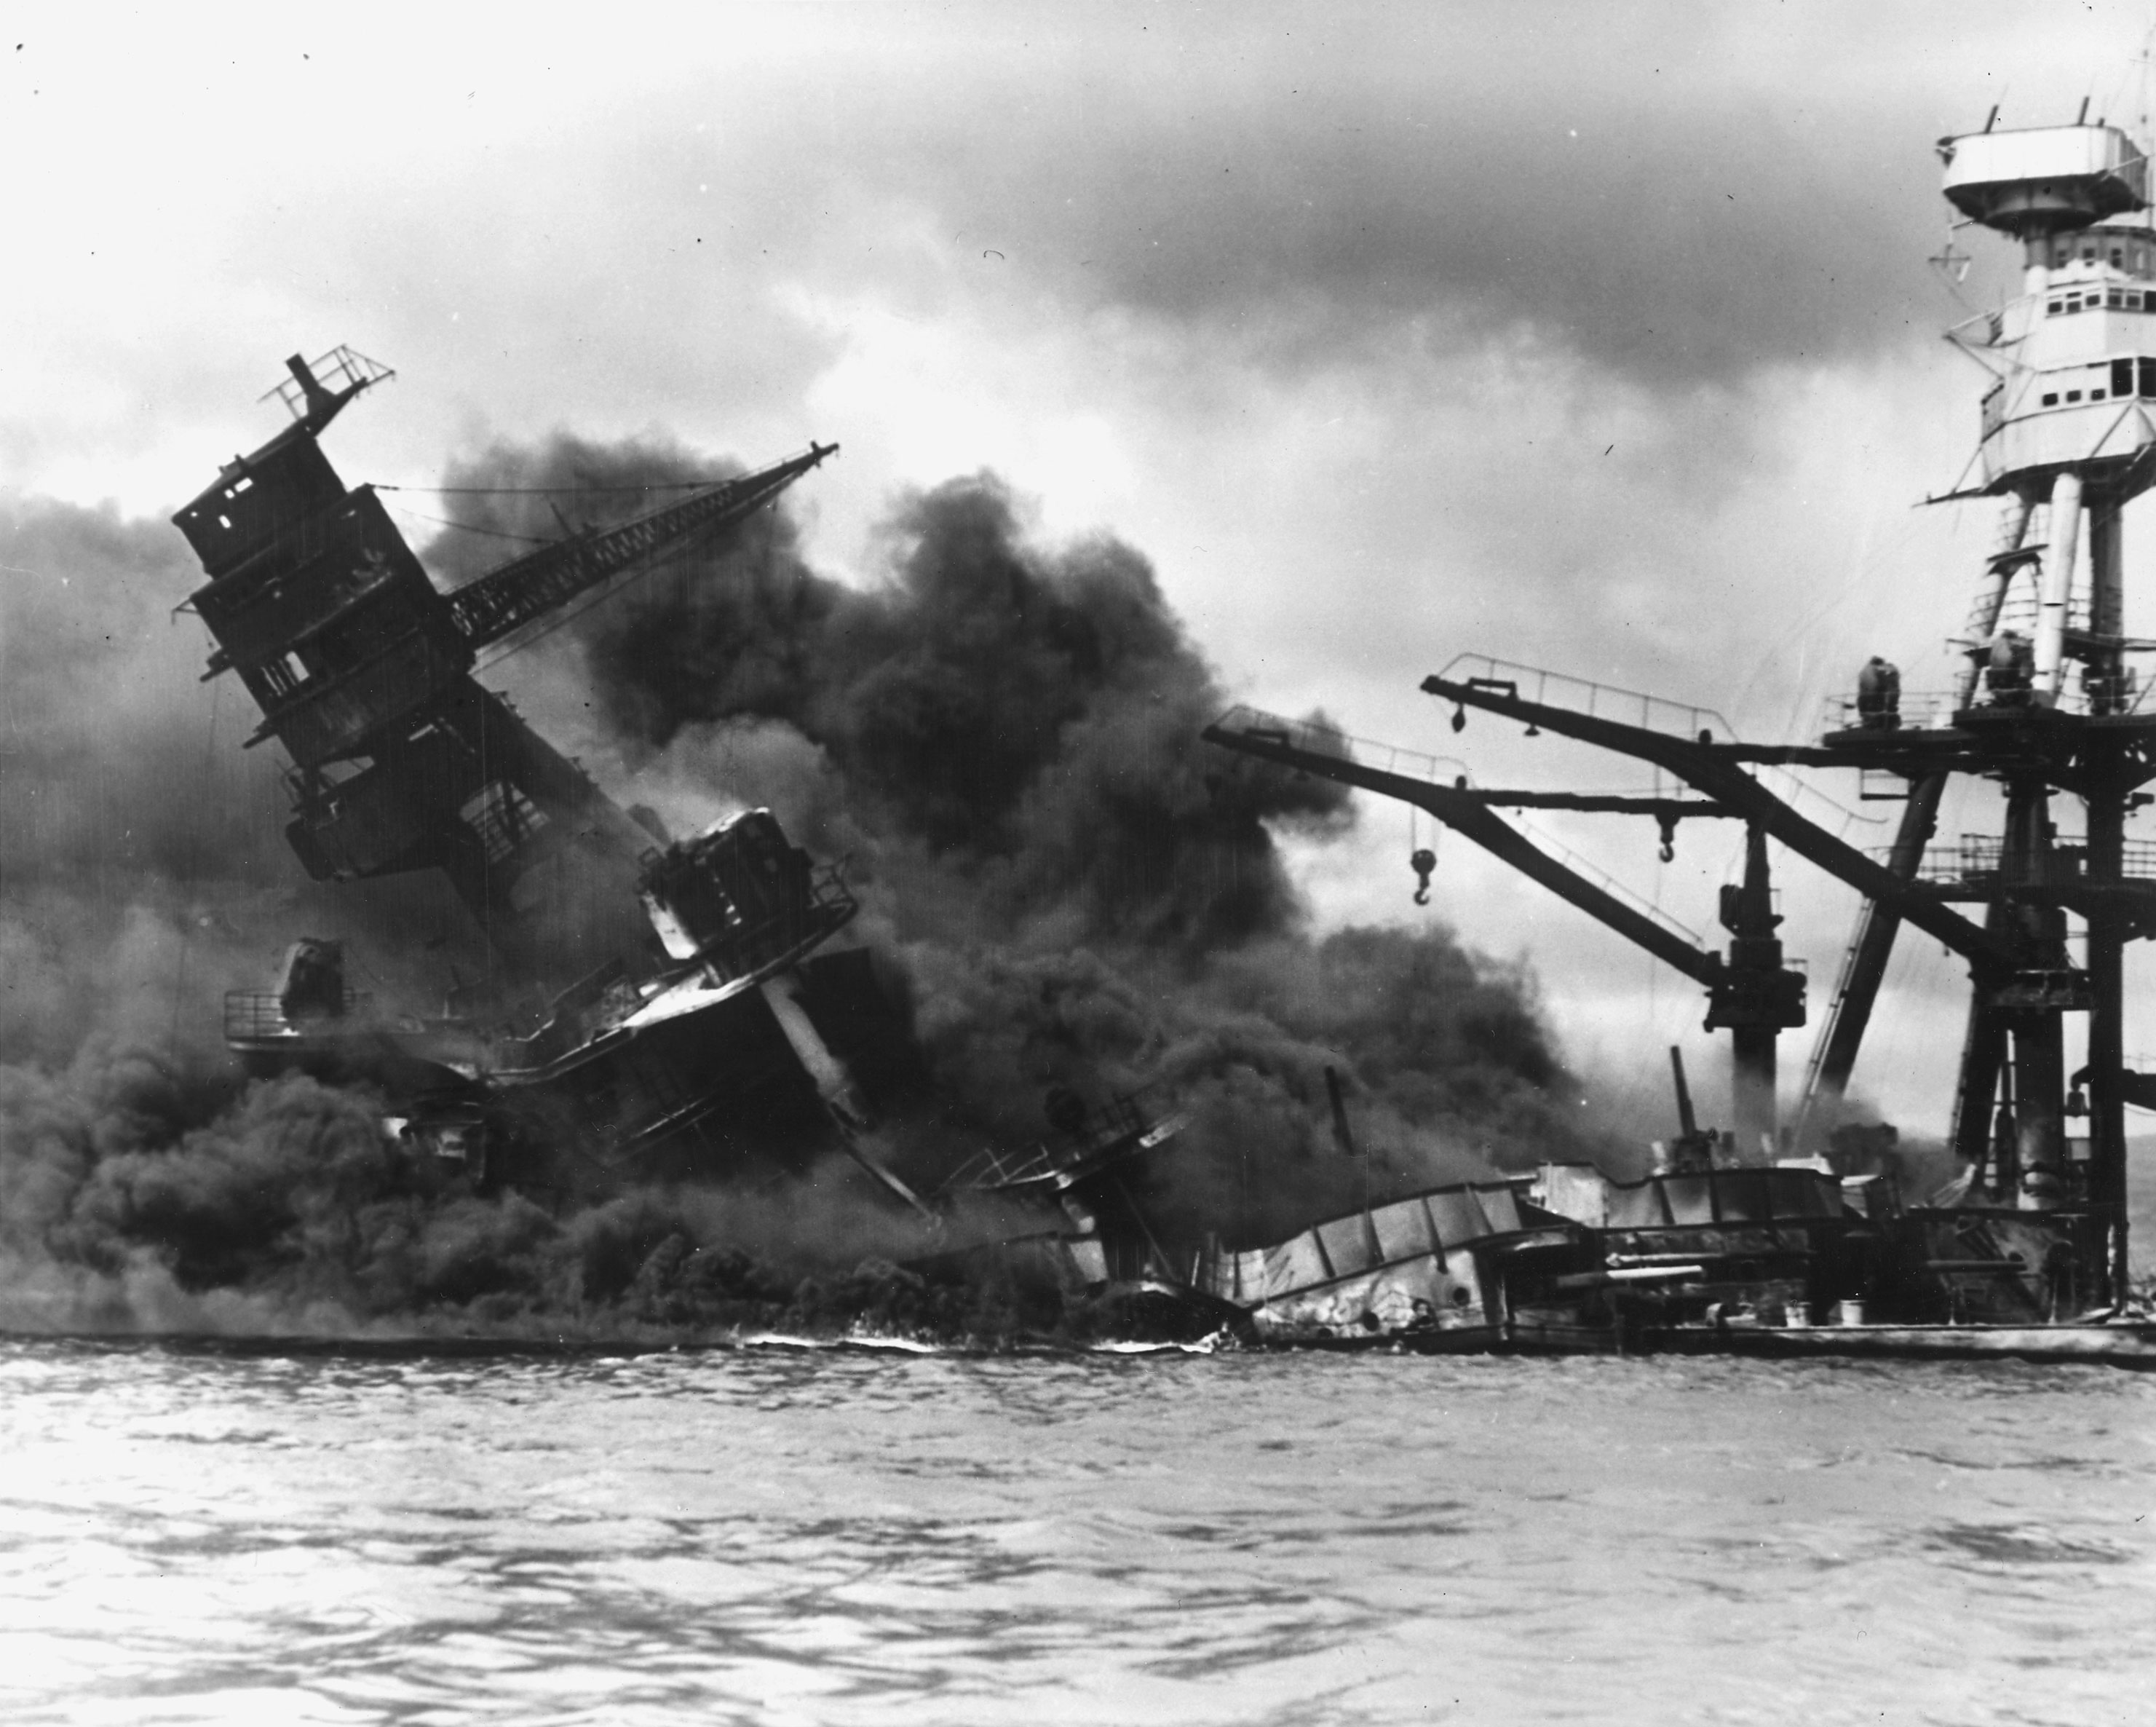 Photo of Sinking USS Arizona